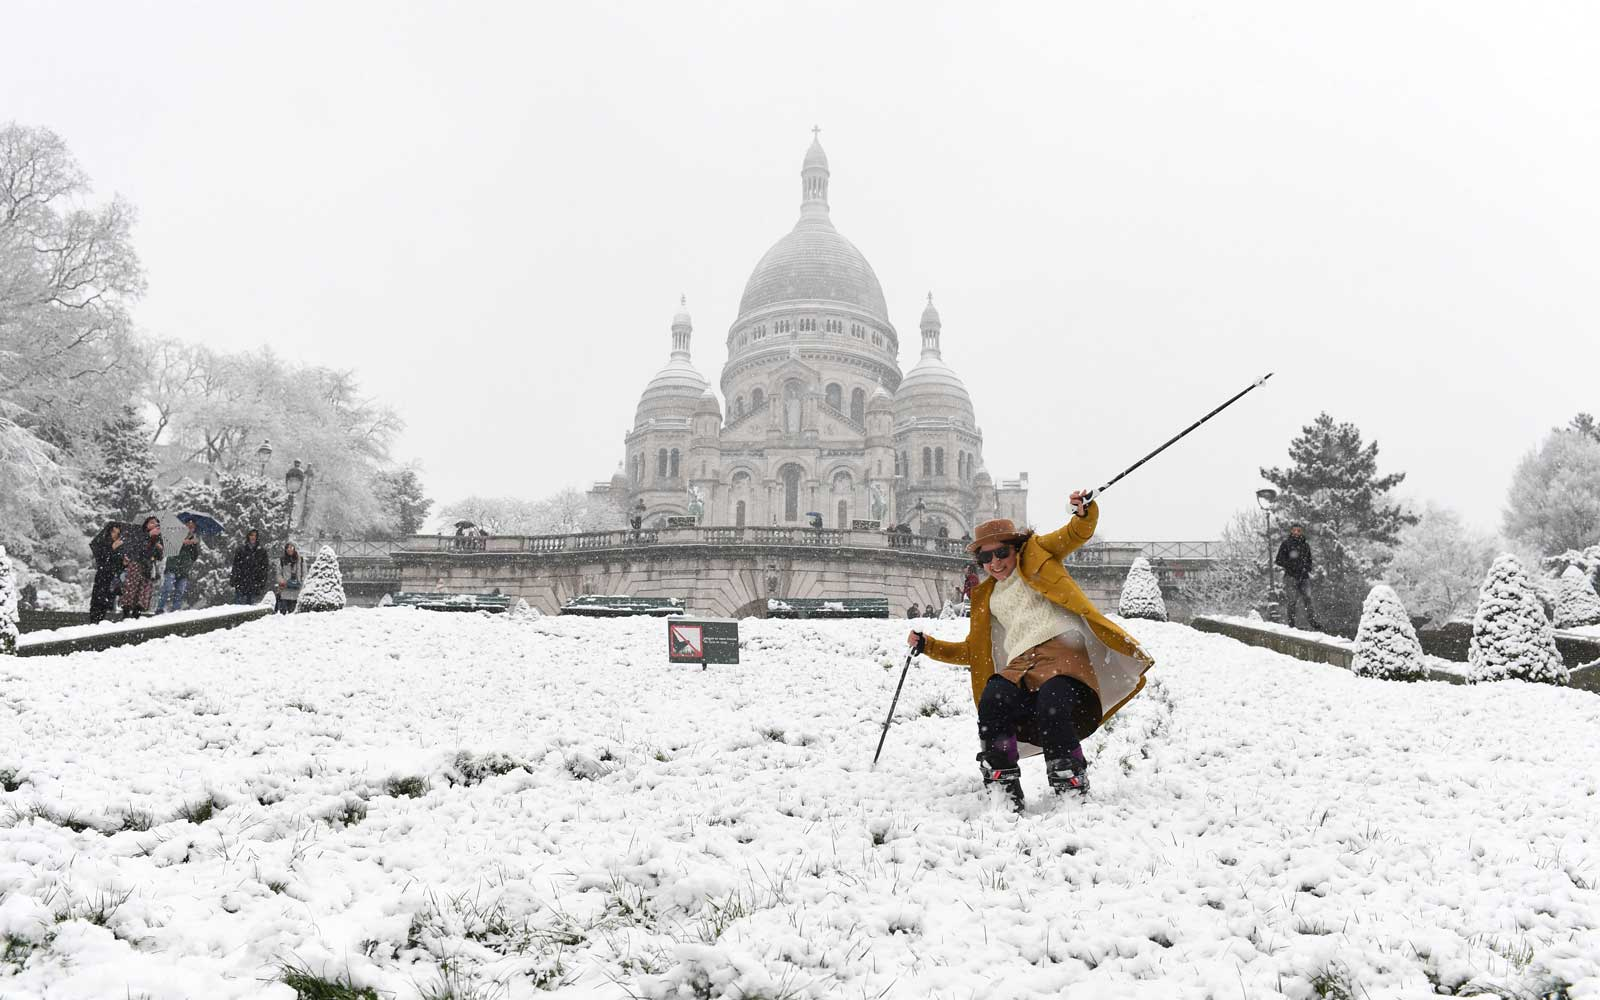 A woman is skiing on the snow-covered Montmartre hill in front of the Basilica of the Sacred Heart on February 6, 2018 in Paris.